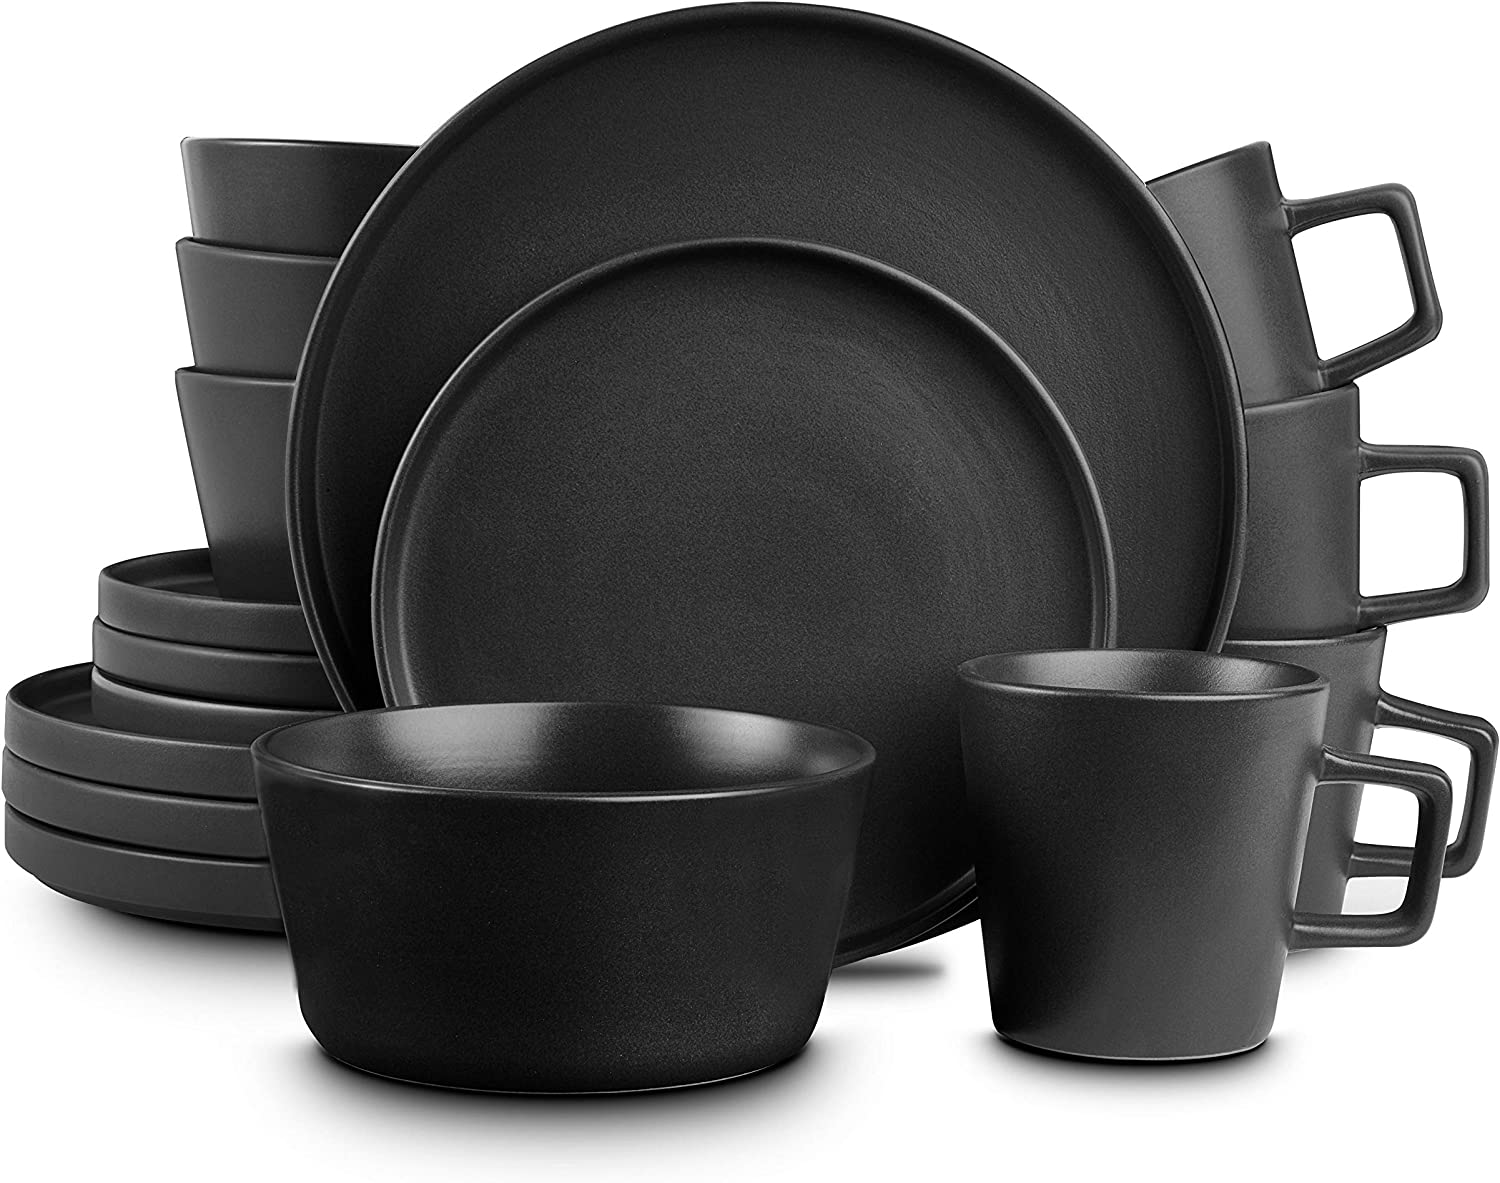 Stone Lain Coupe Dinnerware Set, Service For 4, Matte Black